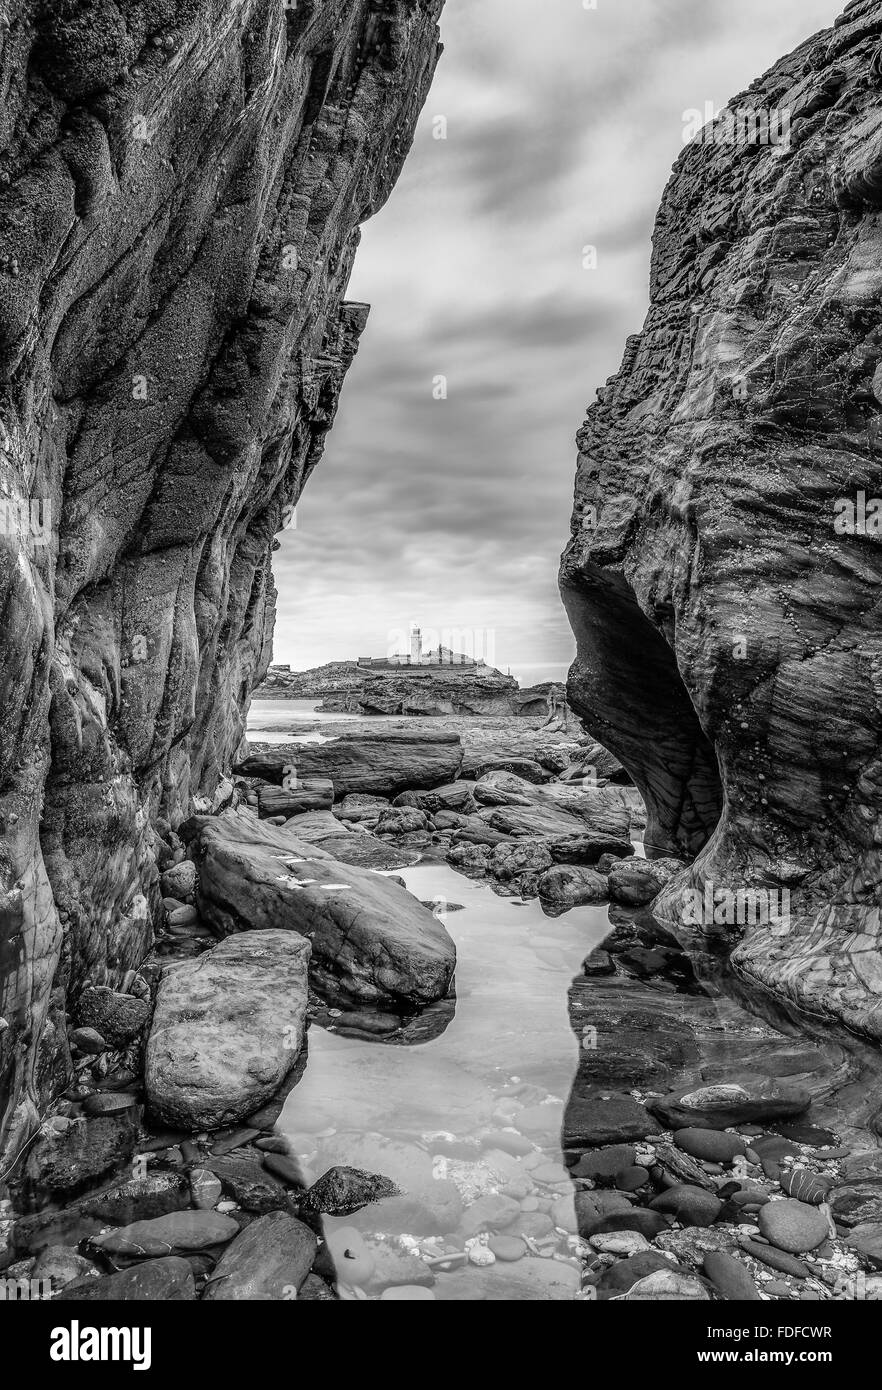 Rocky View, Godrevy Lighthouse, Cornwall, UK - Stock Image